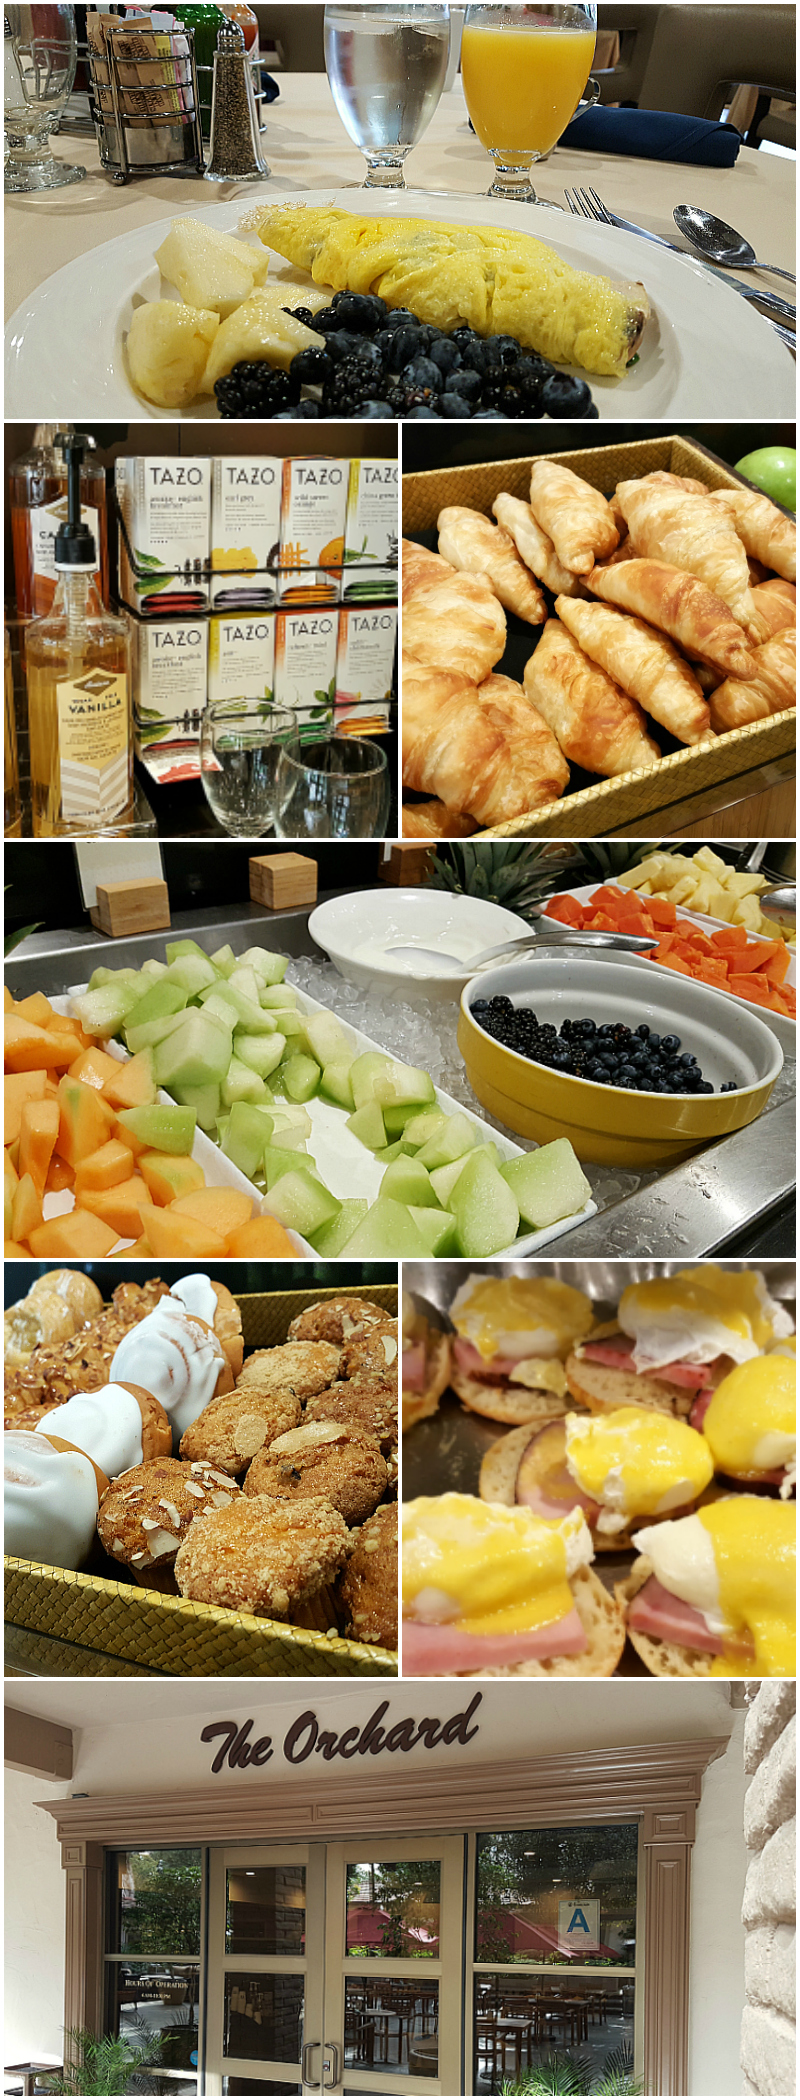 Breakfast Buffet at The Orchard at The Doubletree Claremont Hotel